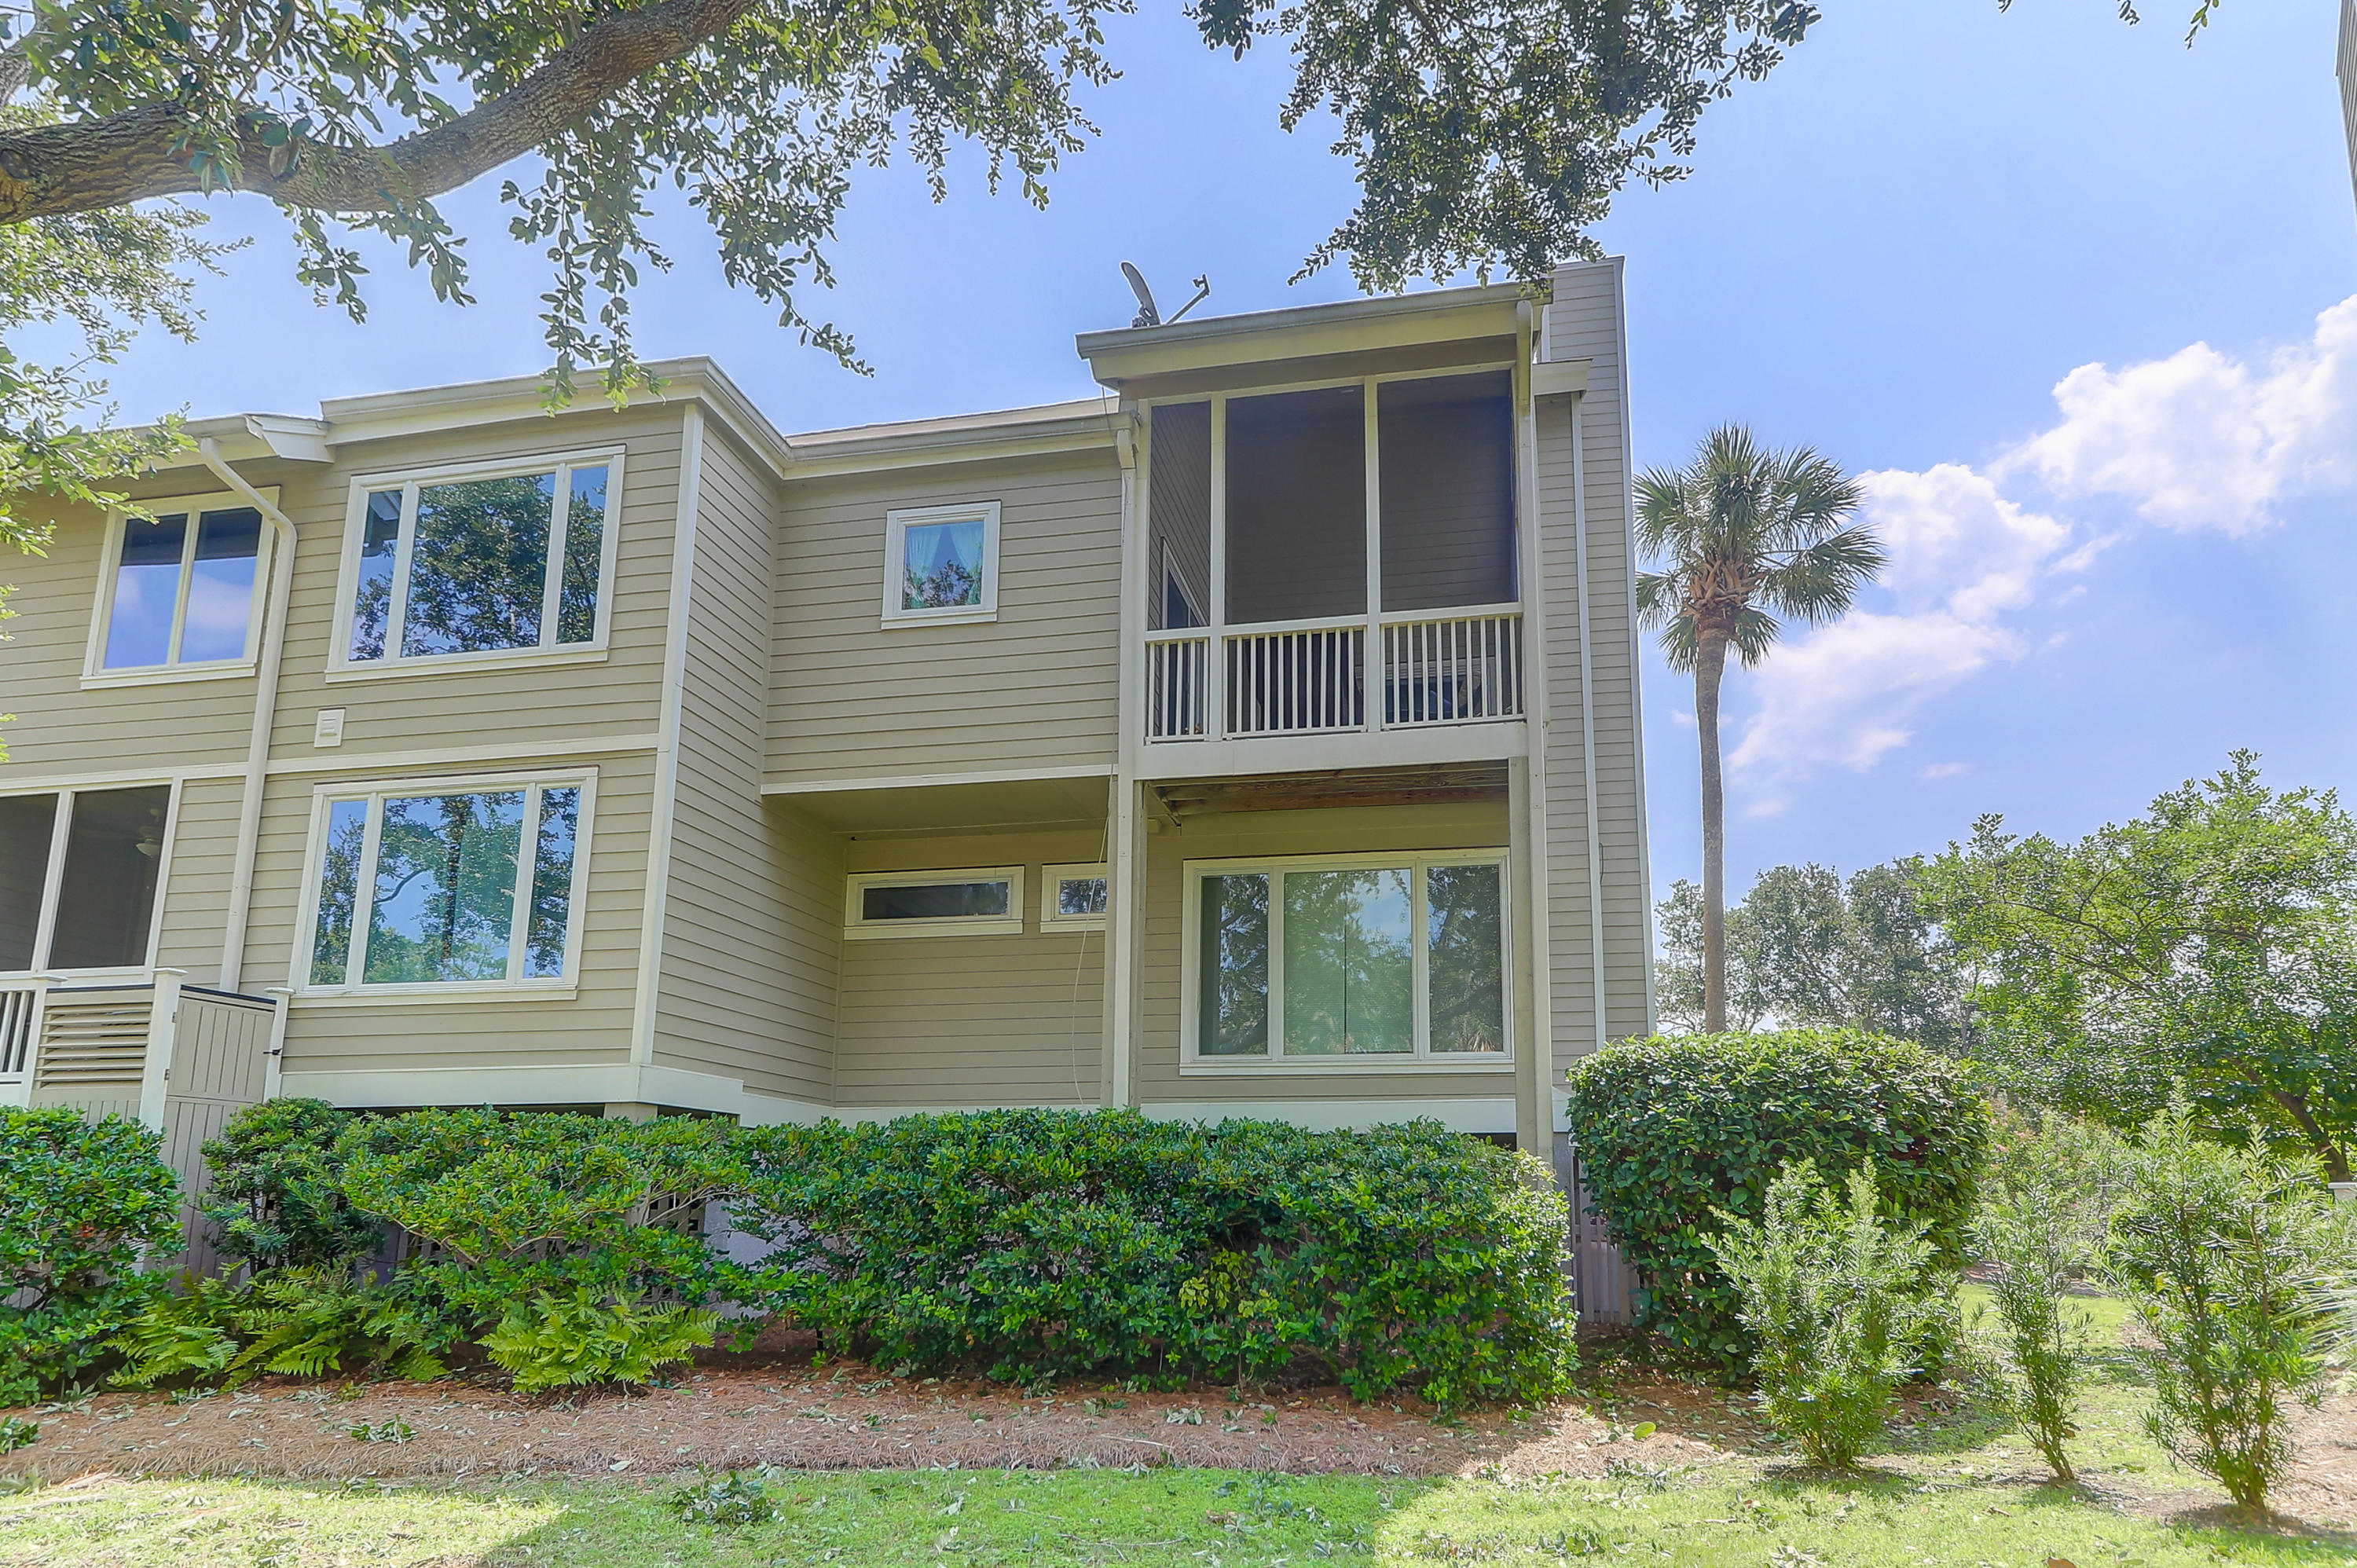 Wild Dunes Homes For Sale - 40 Linkside, Isle of Palms, SC - 7